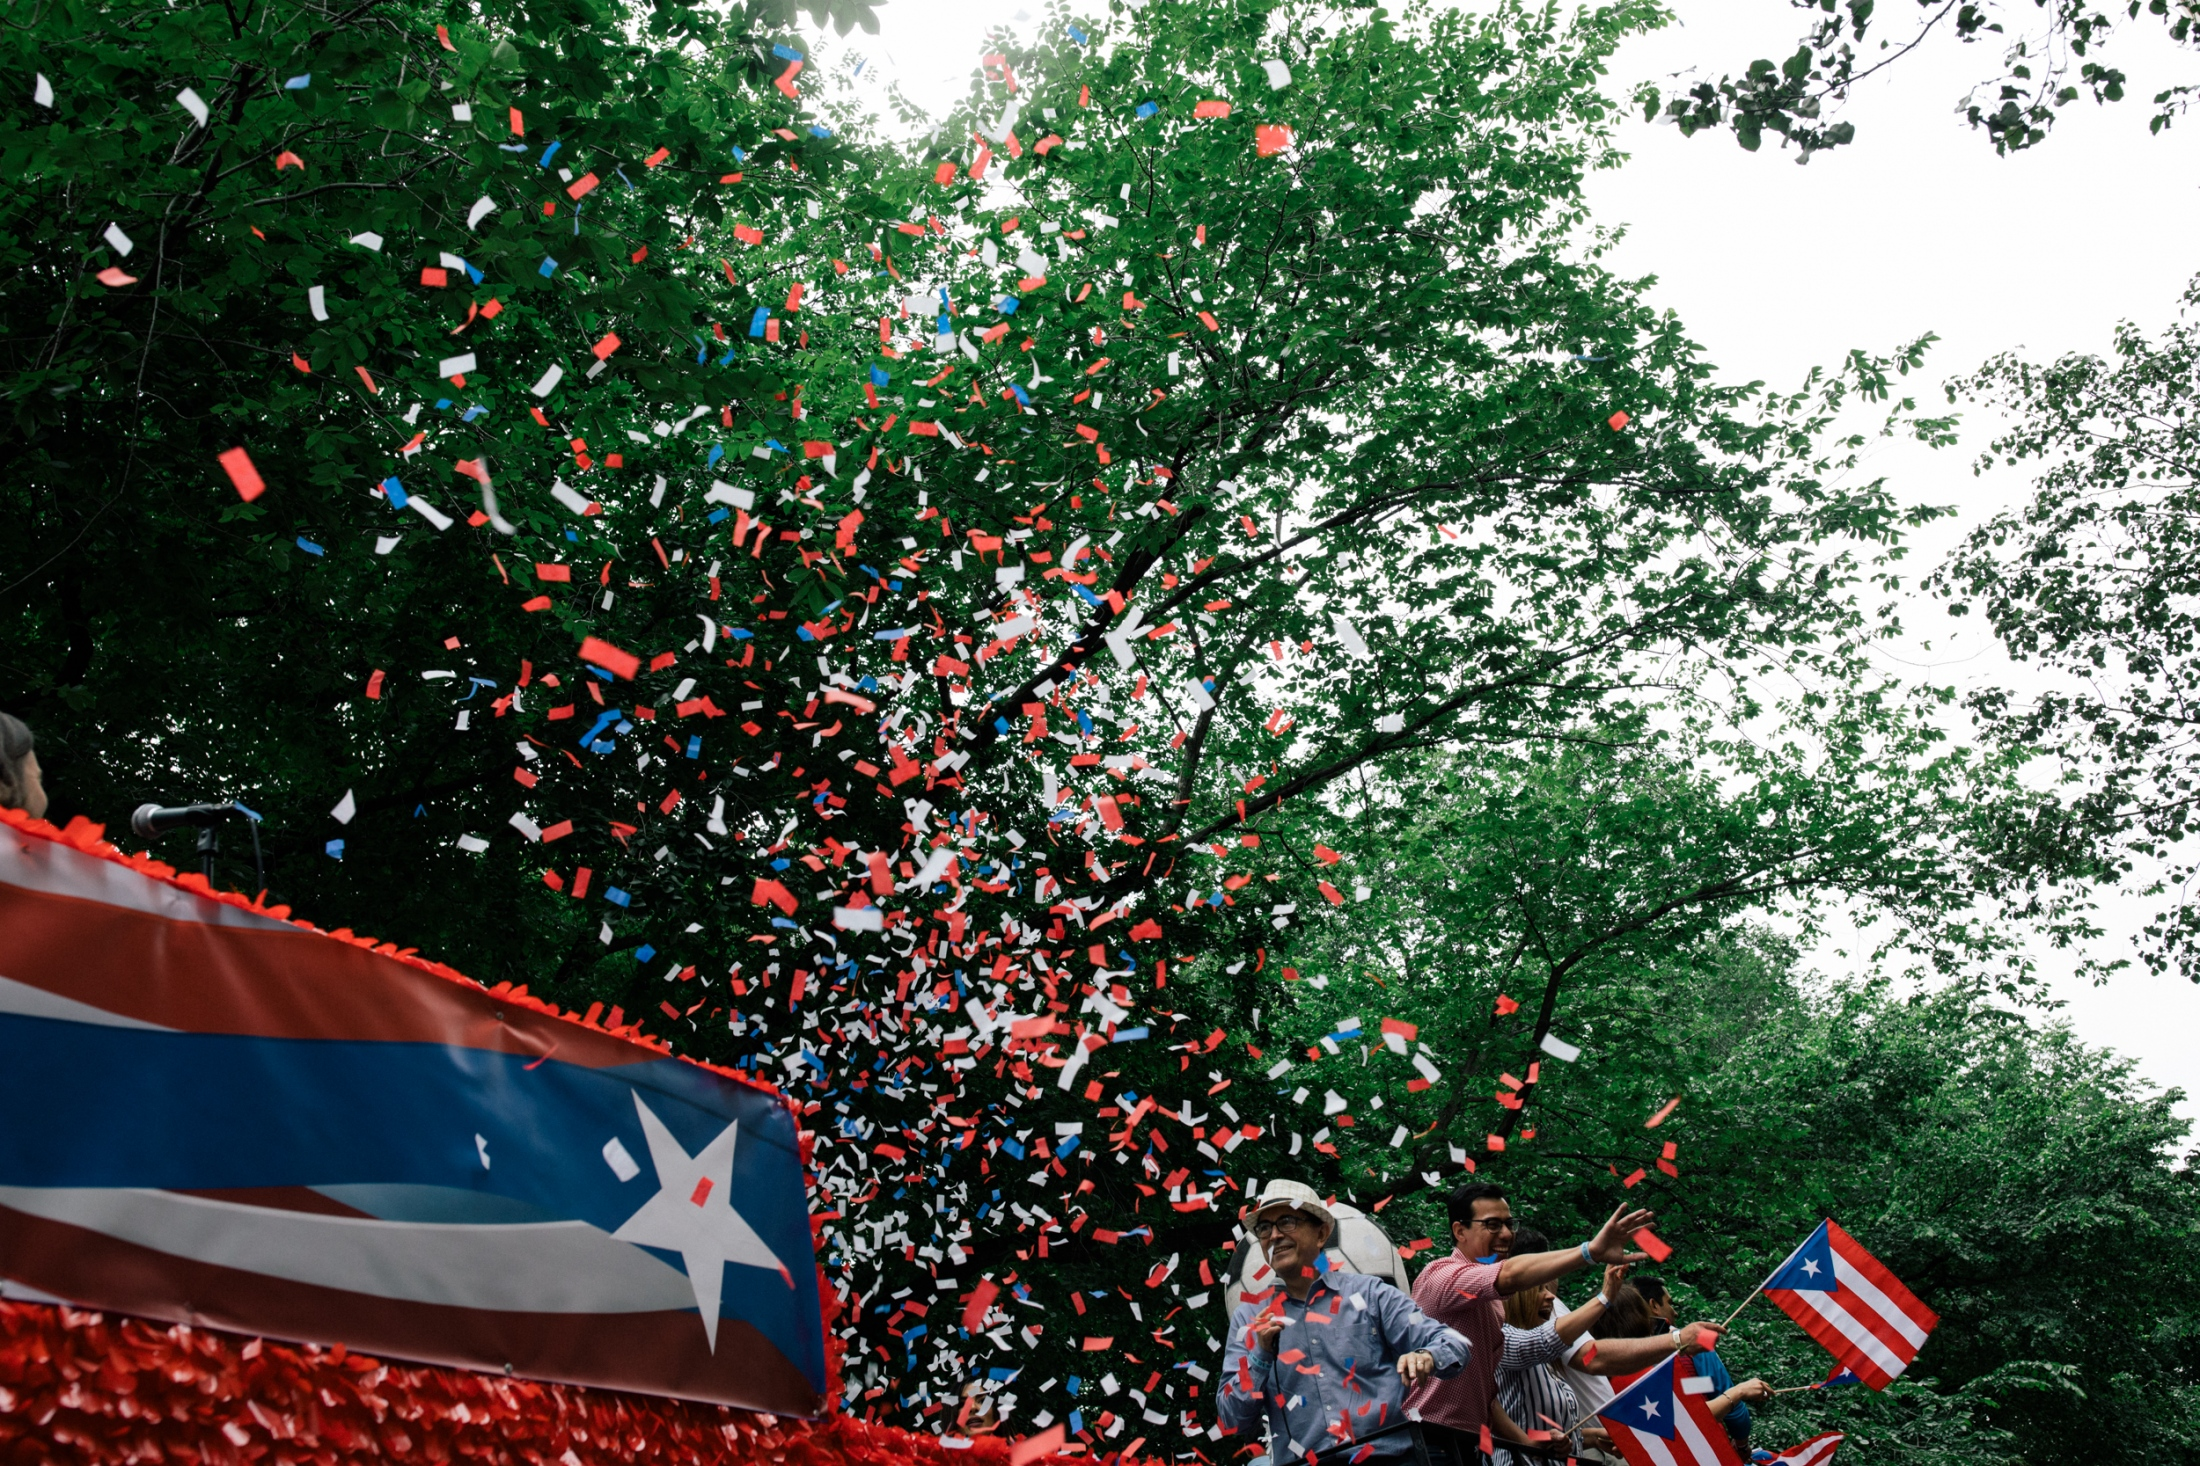 A float operated by the Spanish language channel Telemundo 47 releases confetti and hands out inflatable soccer balls at Fifth Avenue and East 61st Street.